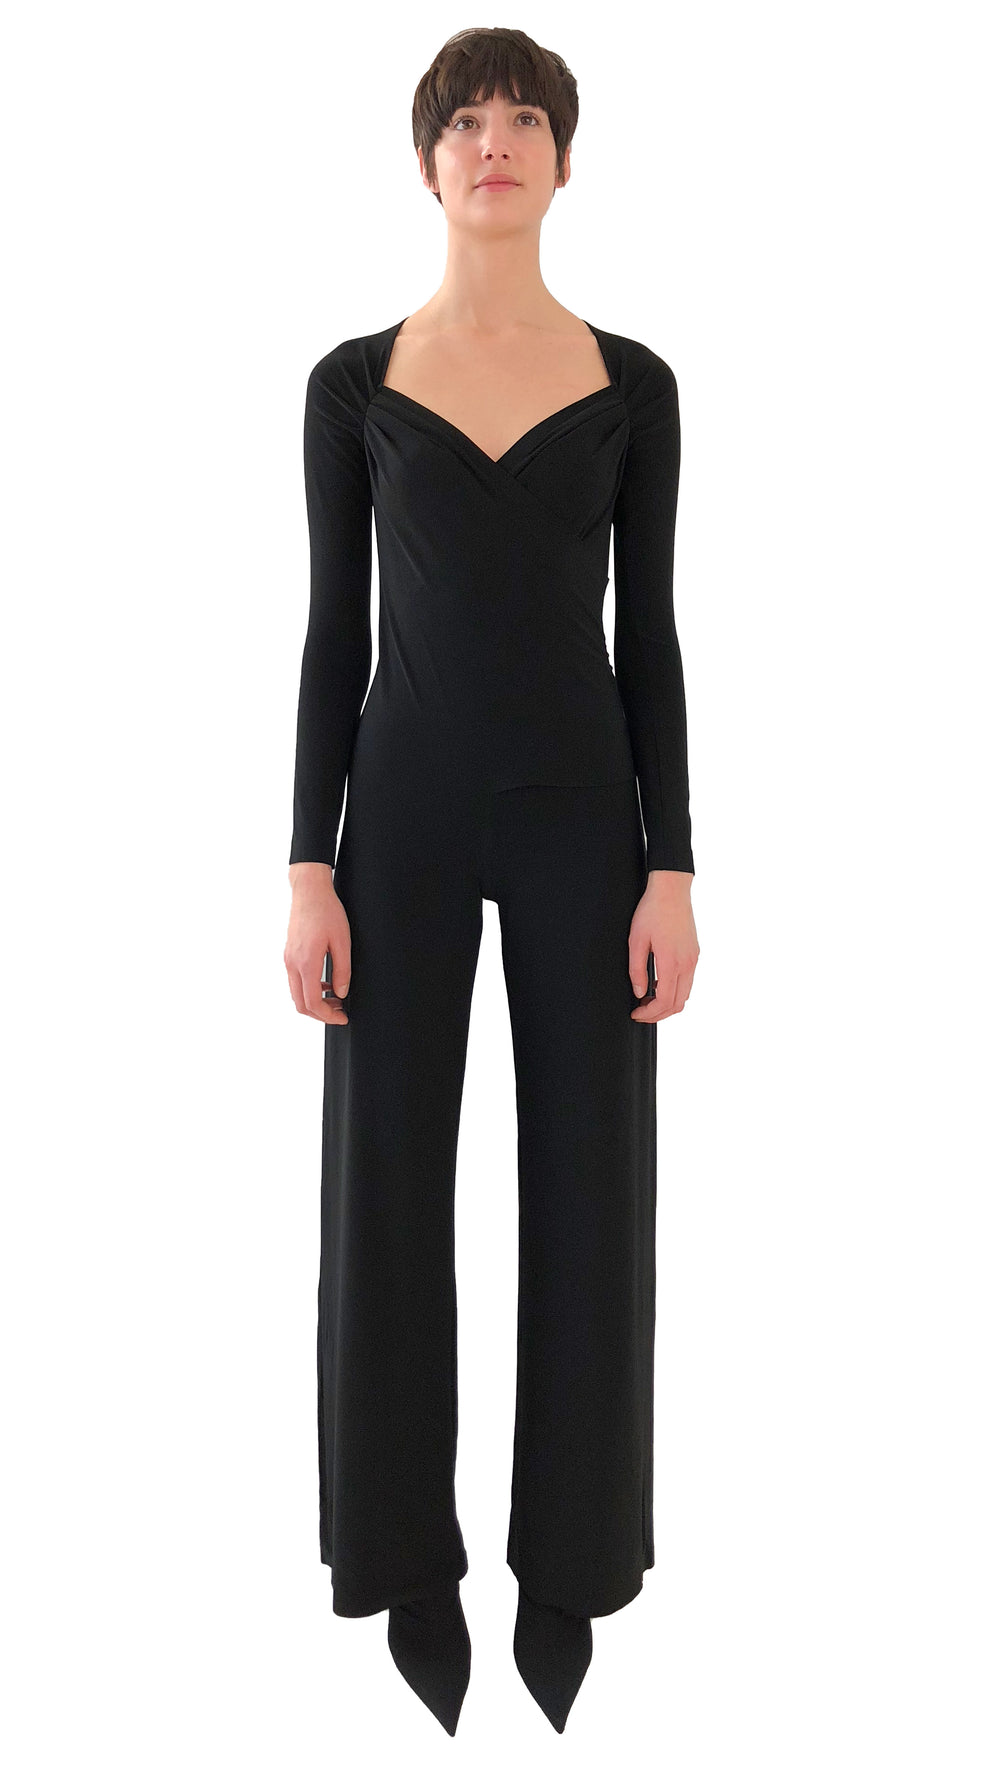 LONG SLEEVE SWEETHEART SIDE DRAPE JUMPSUIT